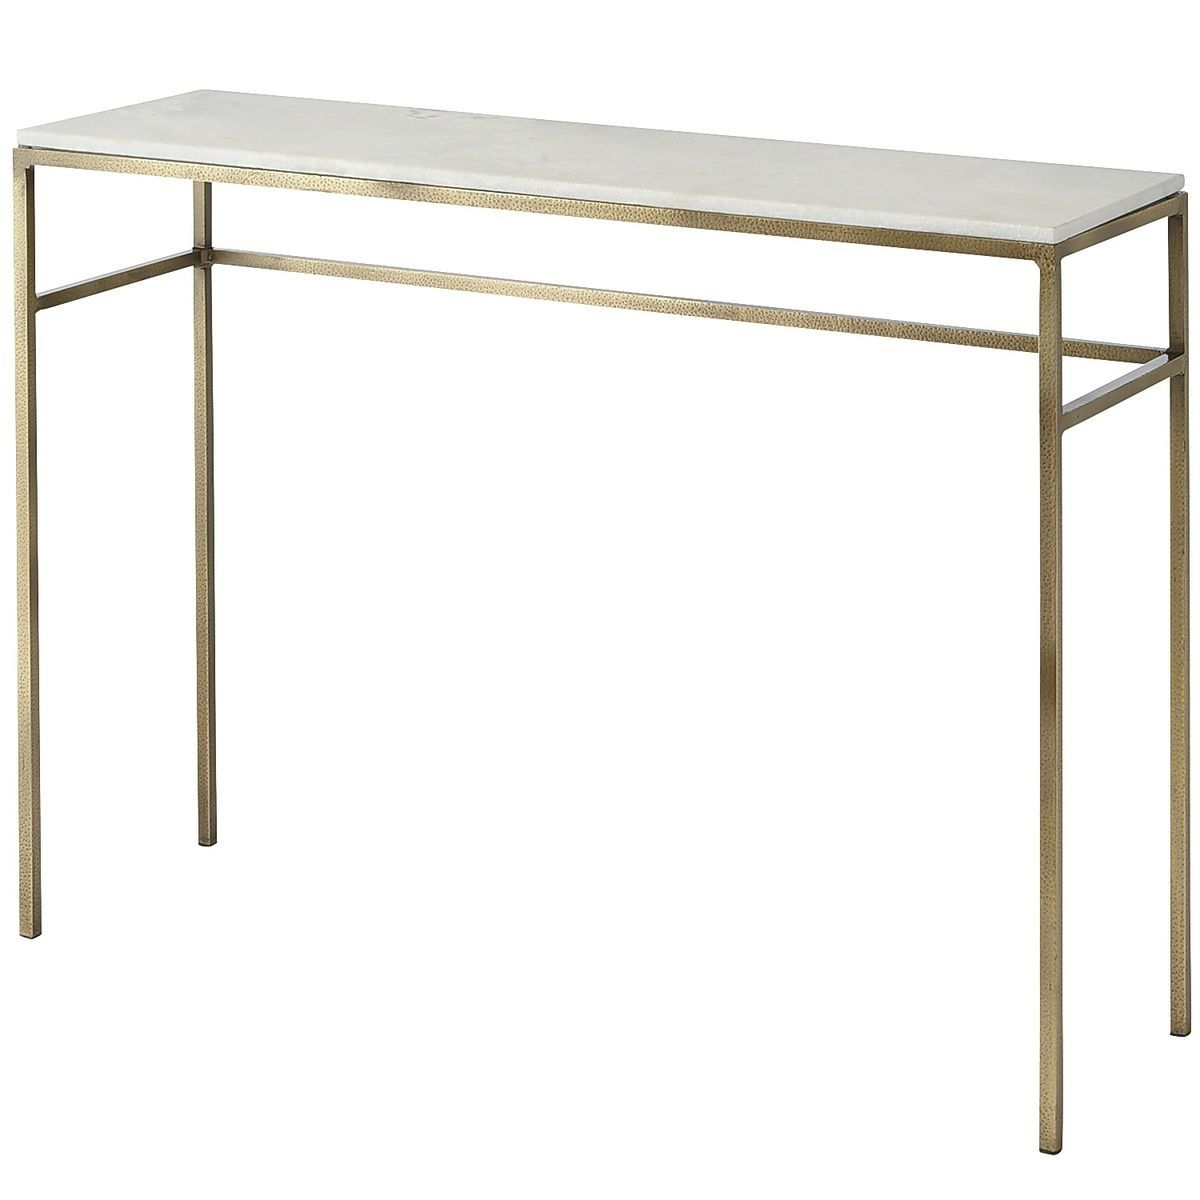 If You're Looking For A Way To Elevate Your Living Space, Ethel Pertaining To Elke Glass Console Tables With Polished Aluminum Base (View 17 of 20)